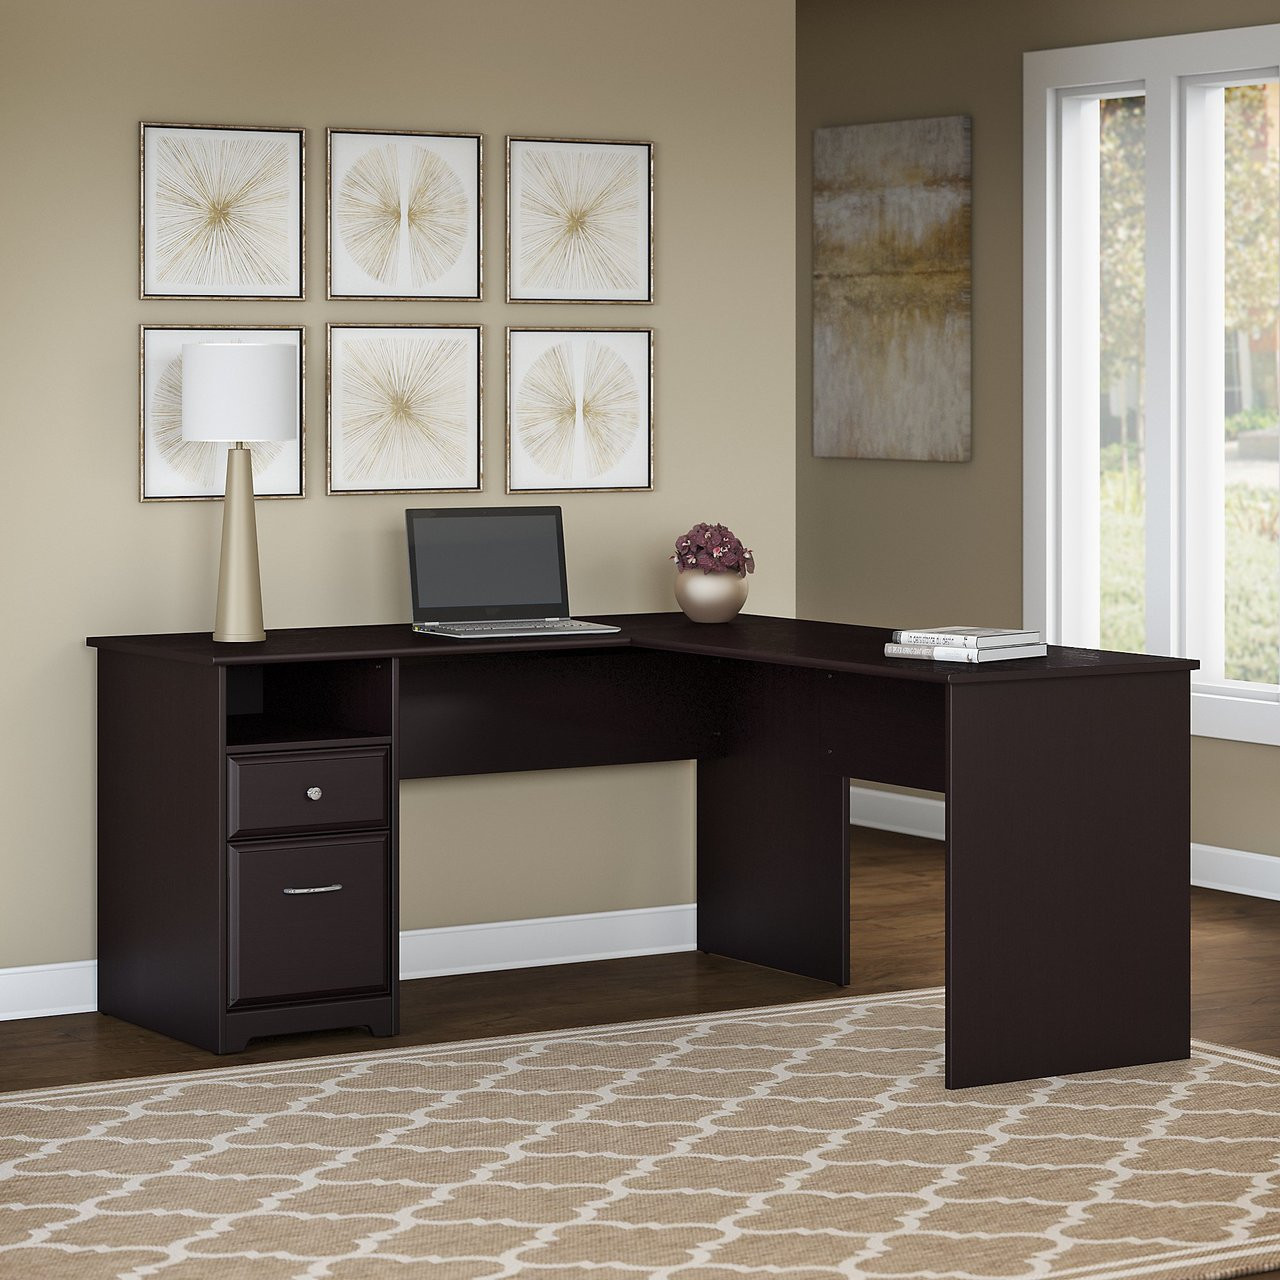 promo code ad767 6e5a2 Bush Cabot Collection L-Shaped Computer Desk with Drawers 60